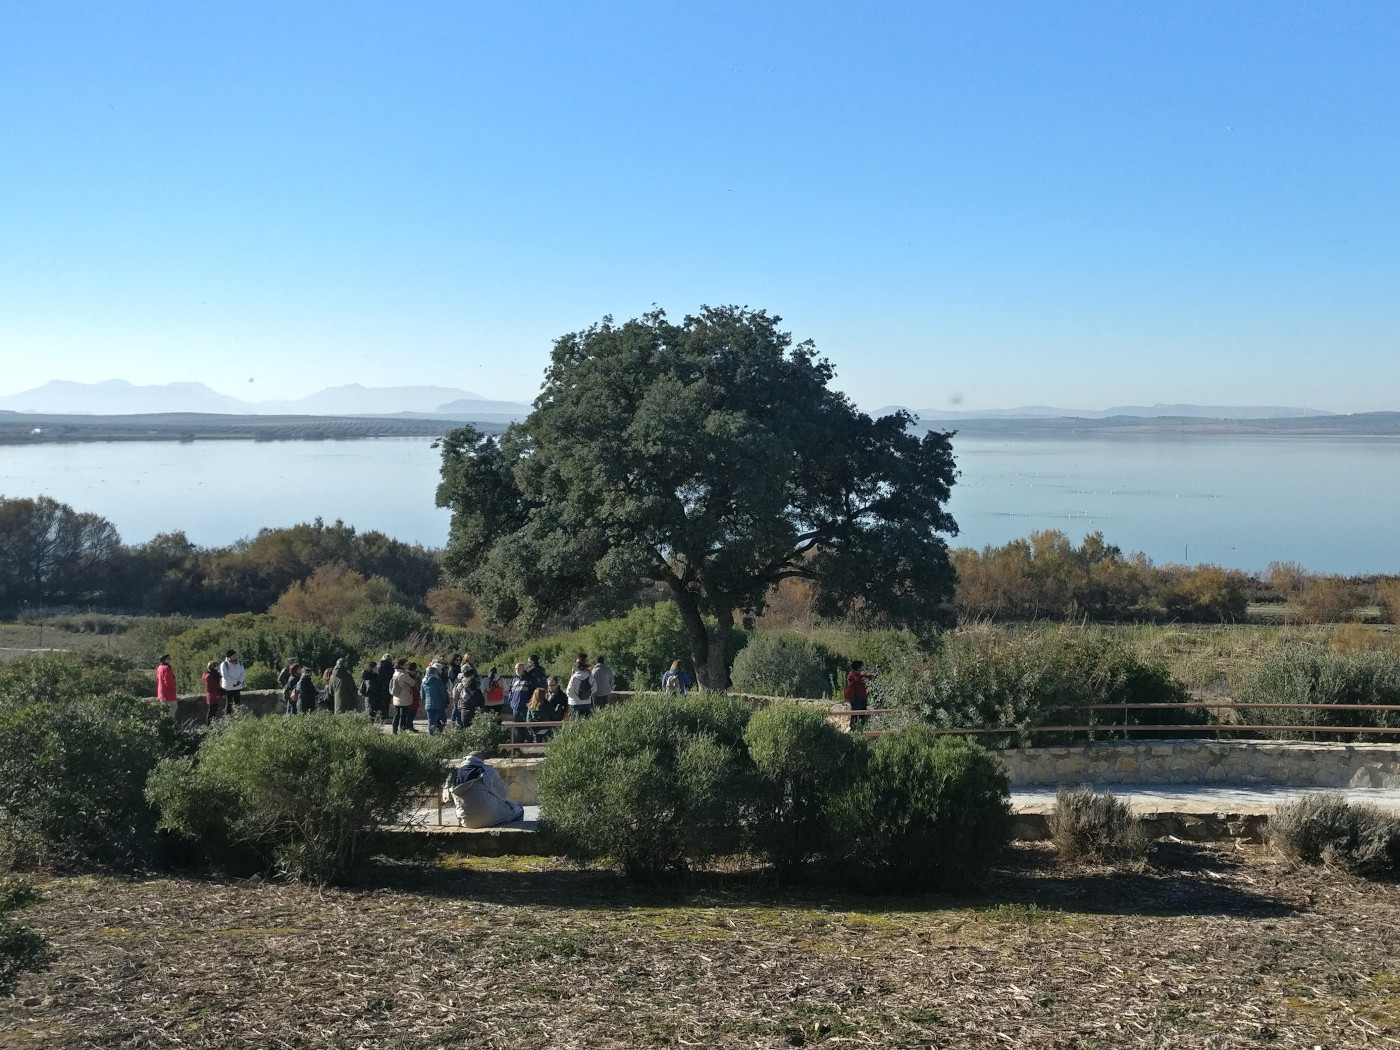 Guided tour in Cerro del Palo viewpoint